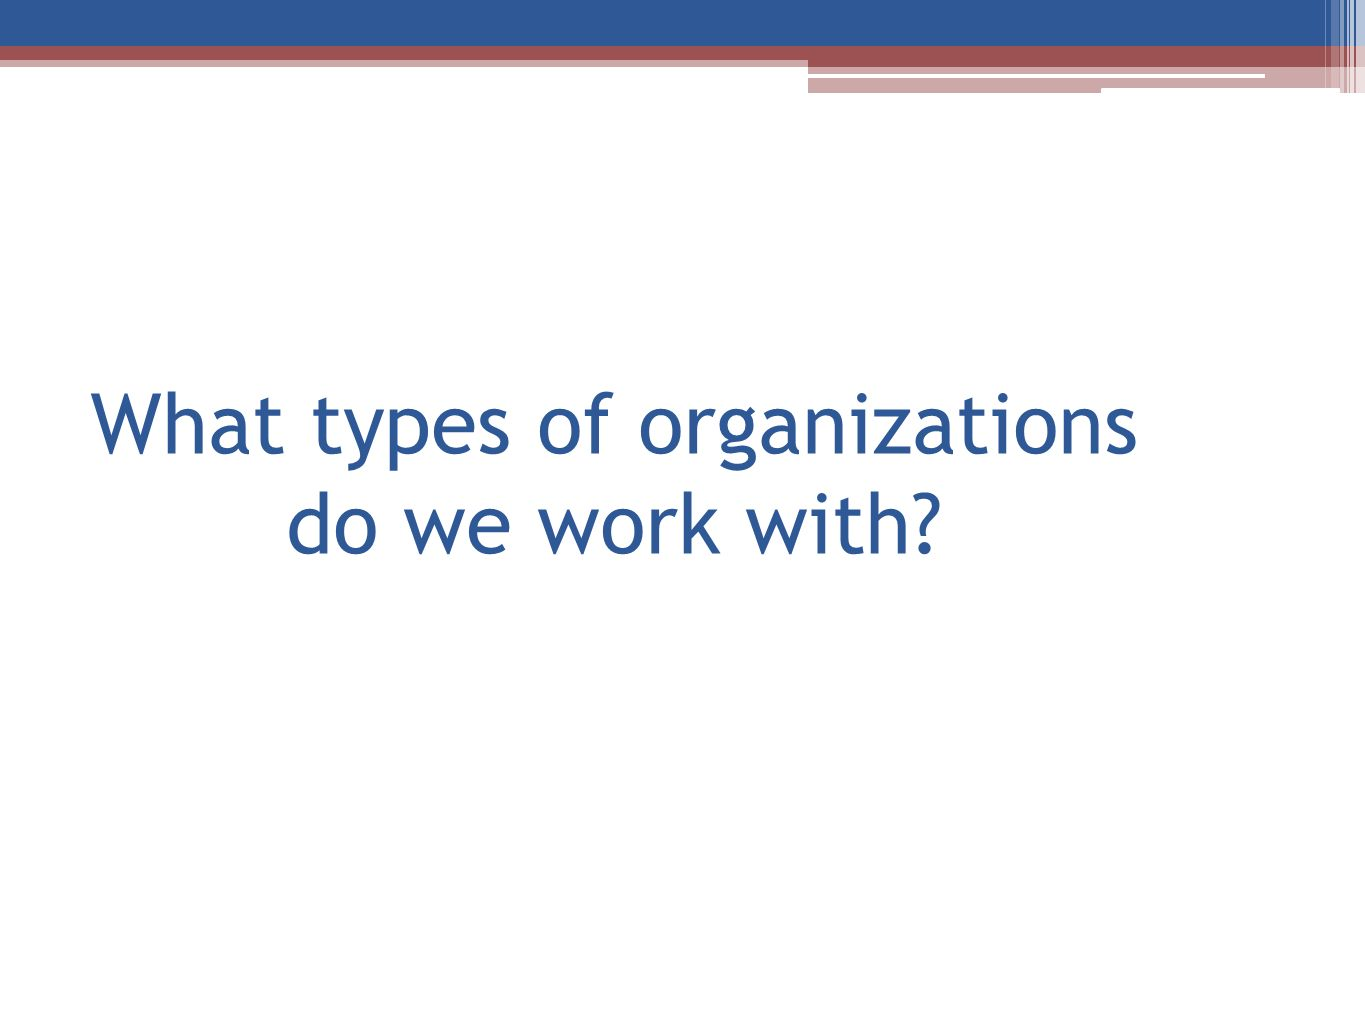 What types of organizations do we work with?